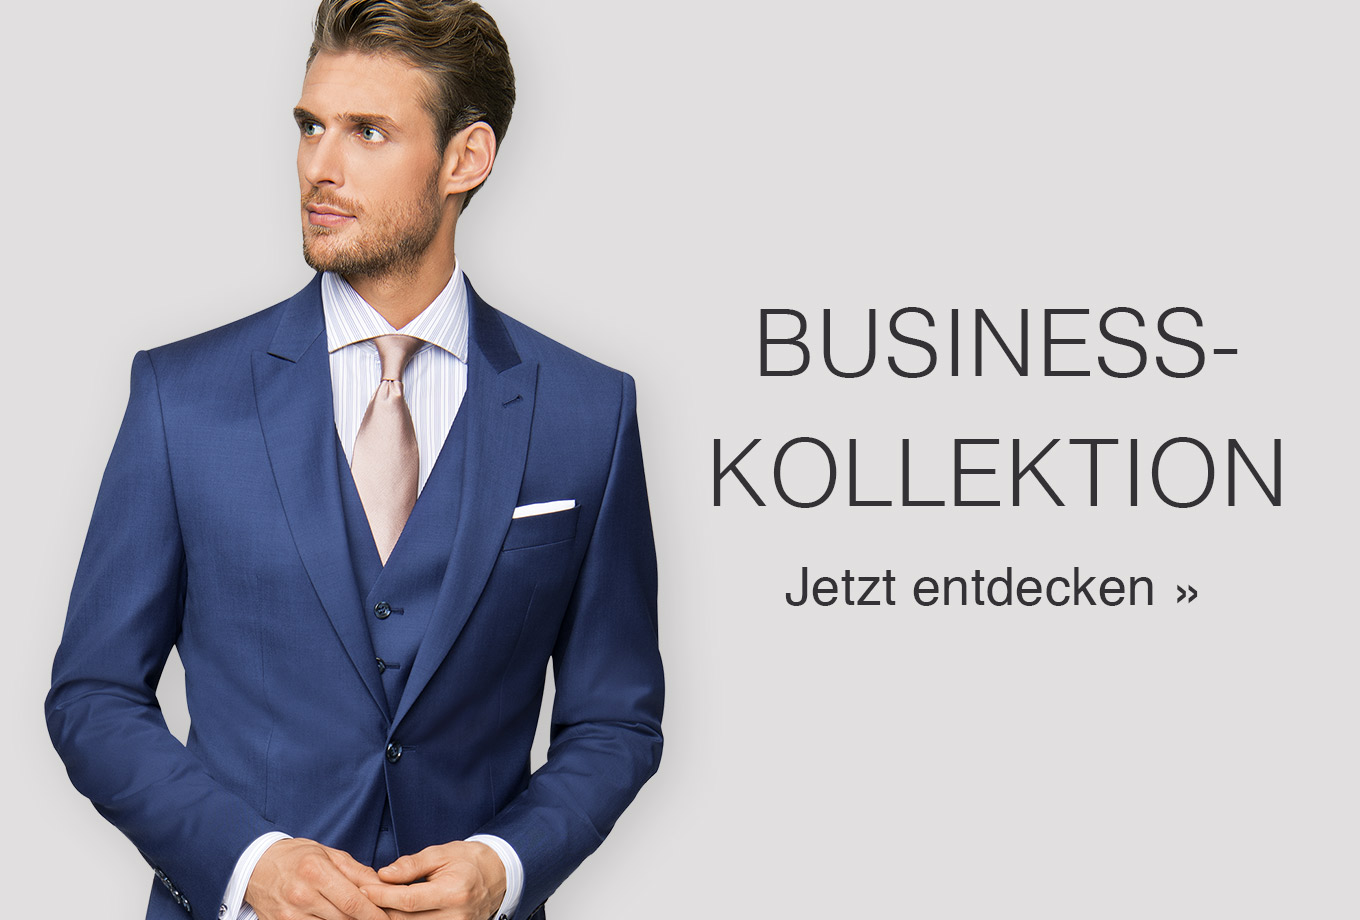 Business-Kollektion nach Maß für Herren